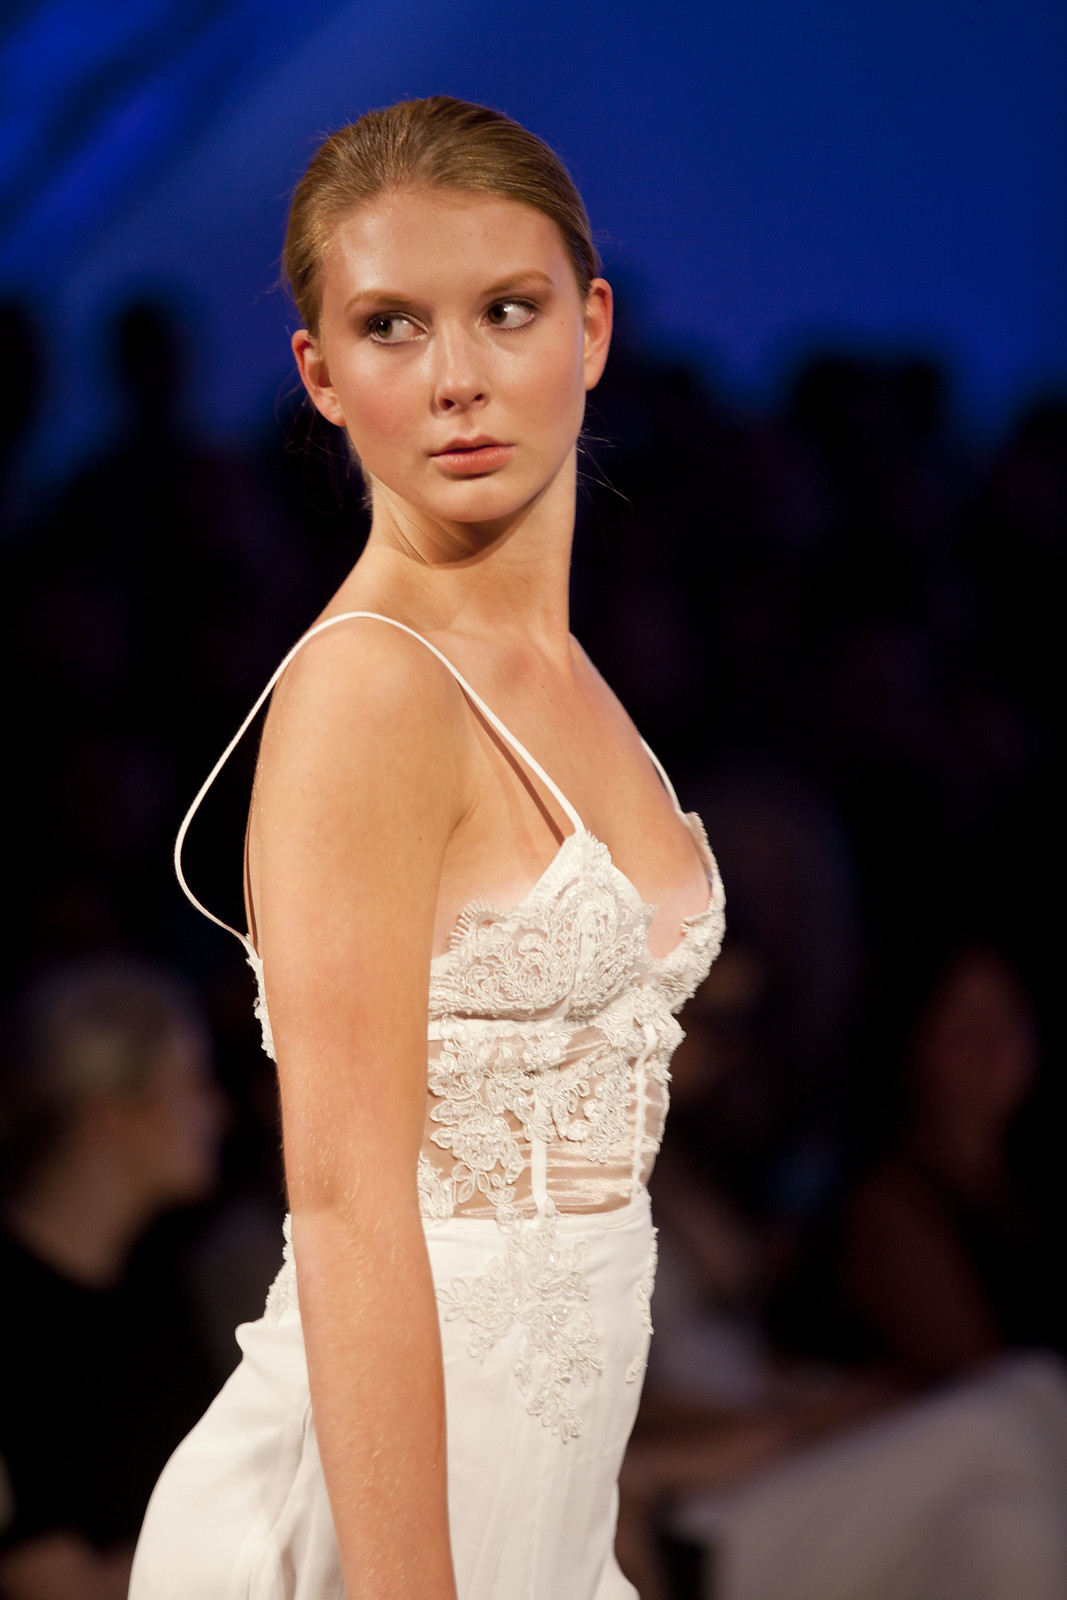 Vancouver Fashion Week - Spring/Summer 2015 (Sep 19th, 2014)